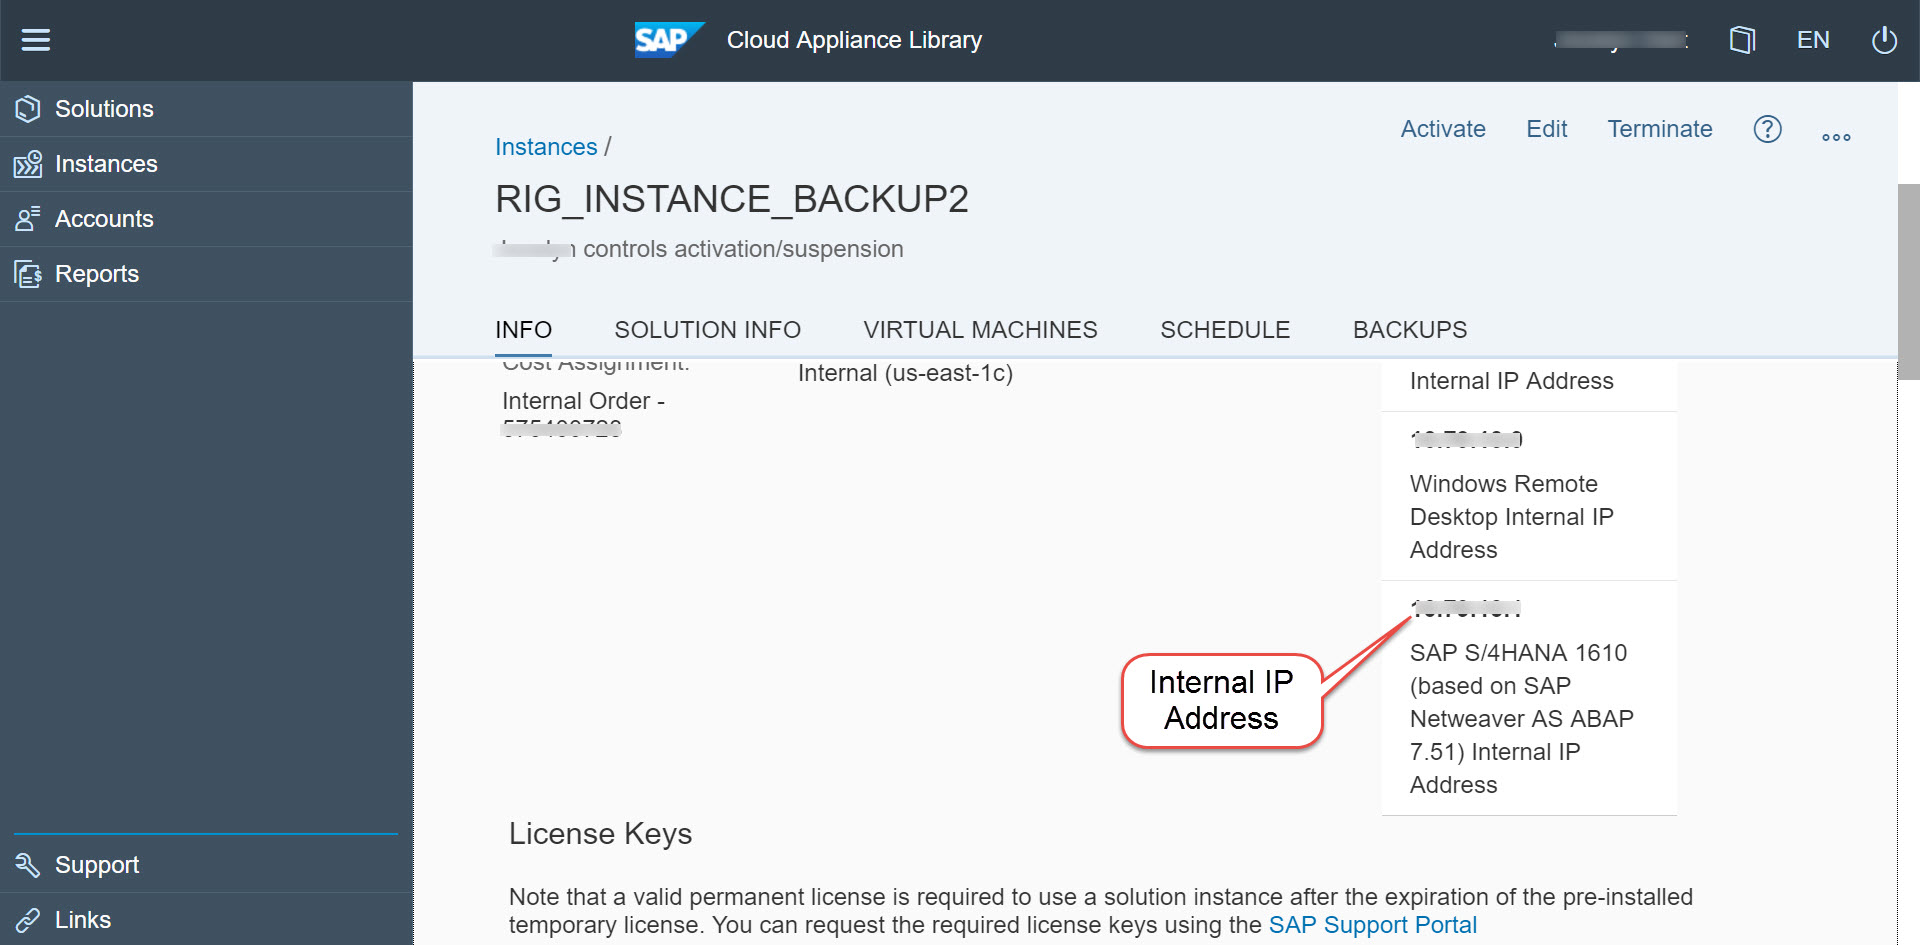 CAL Instance account details showing Internal IP Address in Info section